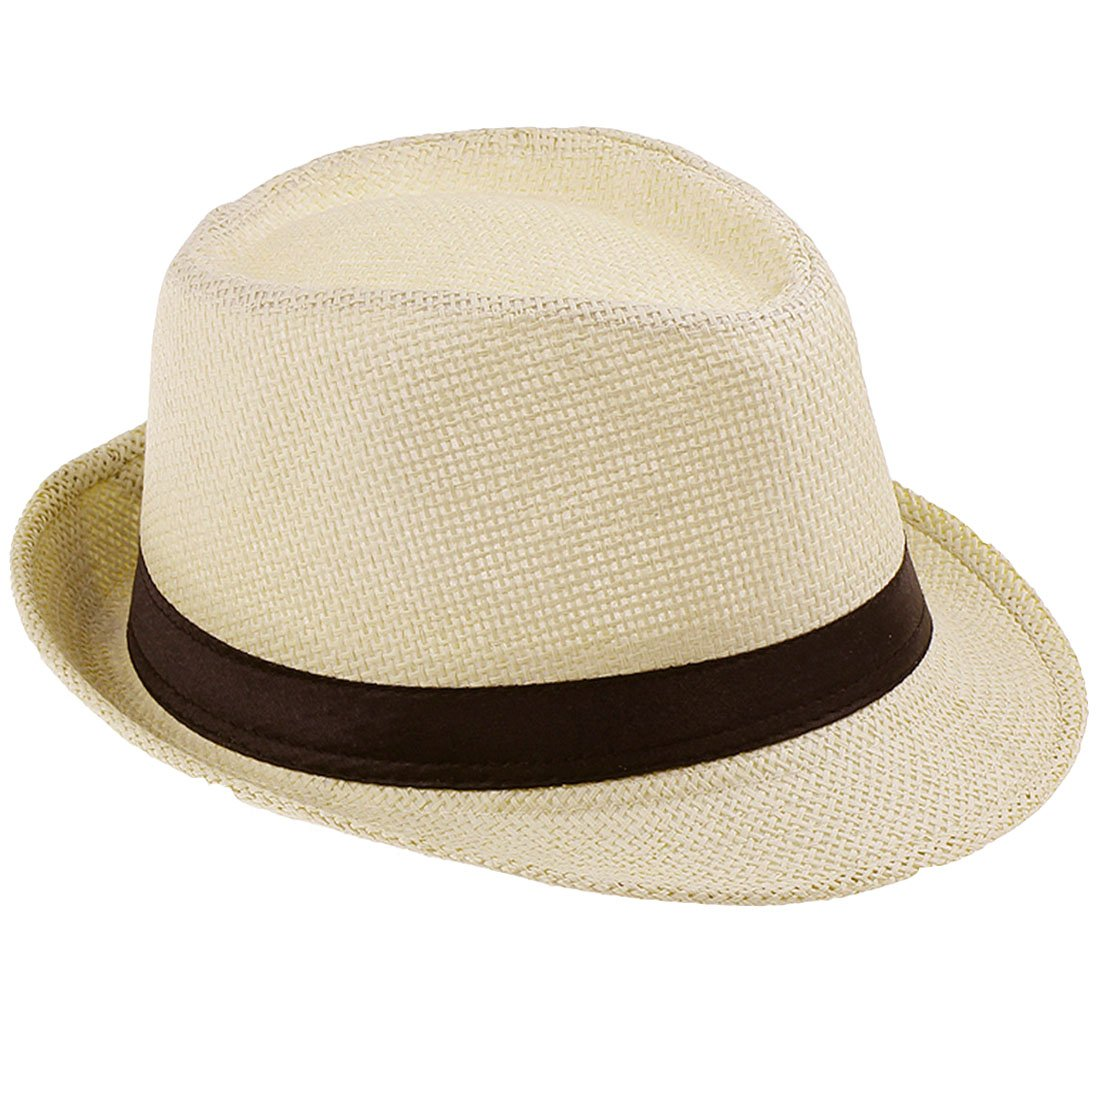 JTC(TM Women Men Straw Fedora Trilby Gangster Hat Summer Beach Panama Jazz Cap-Beige